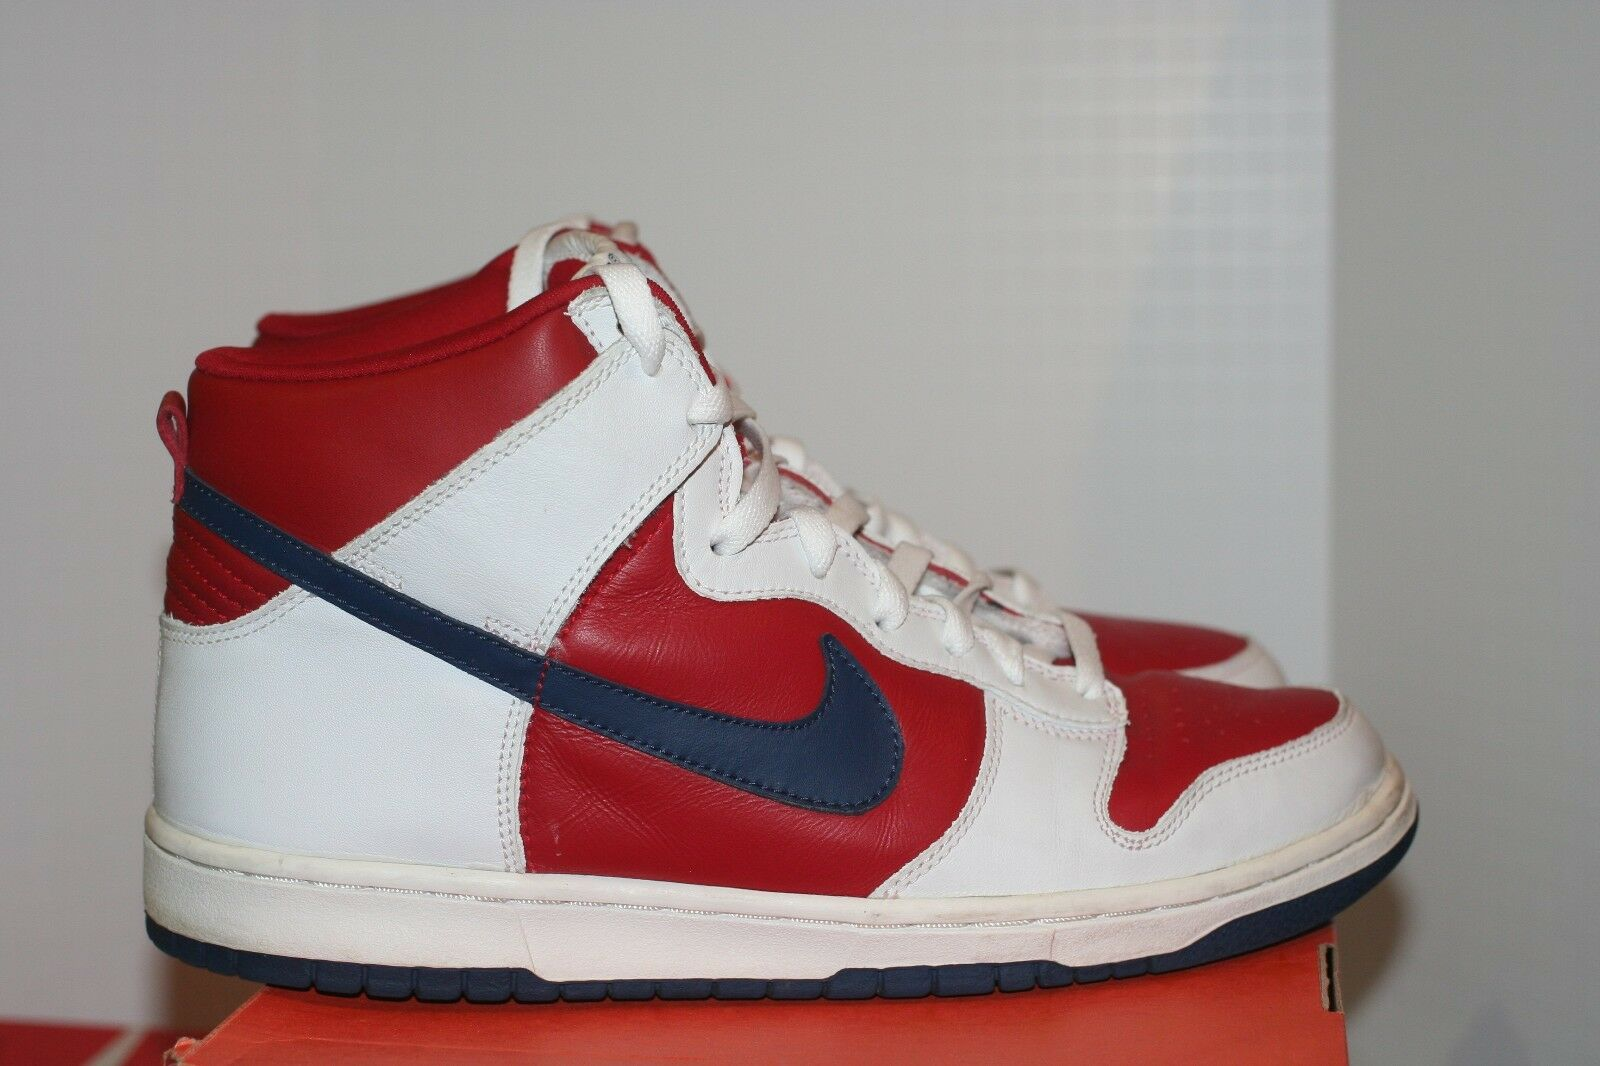 Nike Dunk High Team USA Sz 10 New England Patriots 76ers White Varsity Red Rapid